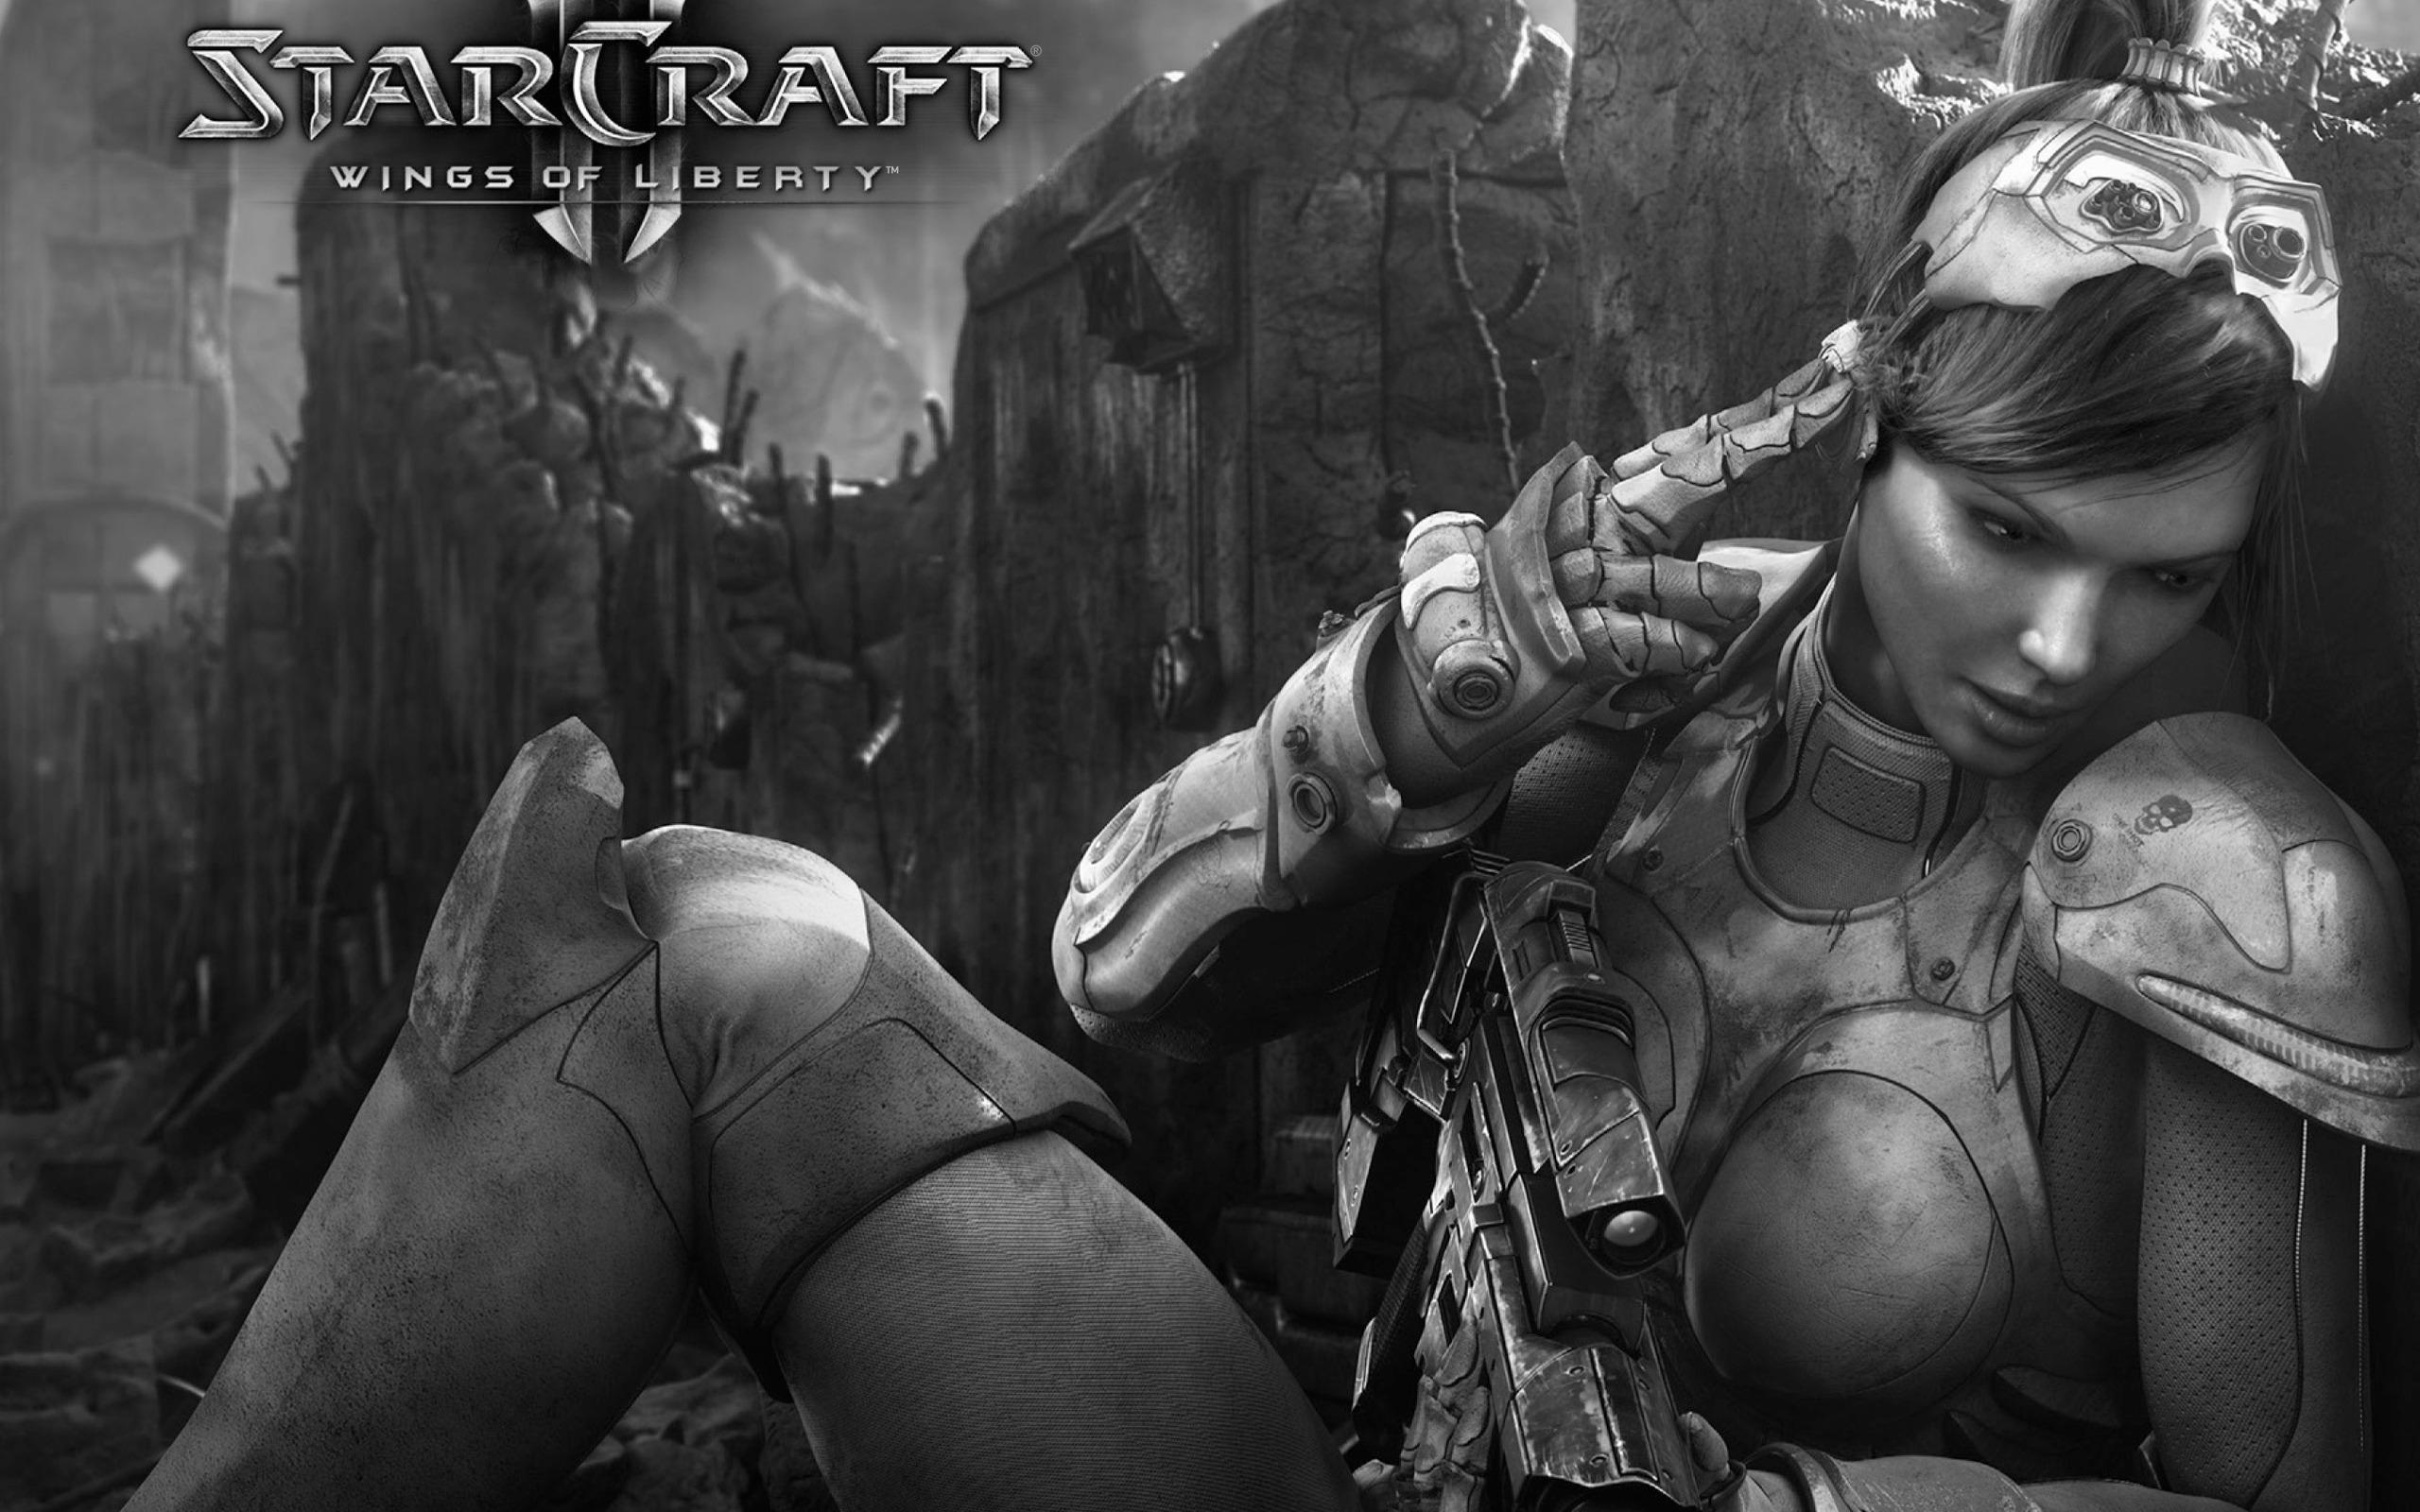 Обои Starcraft Wings Liberty 2560x1600